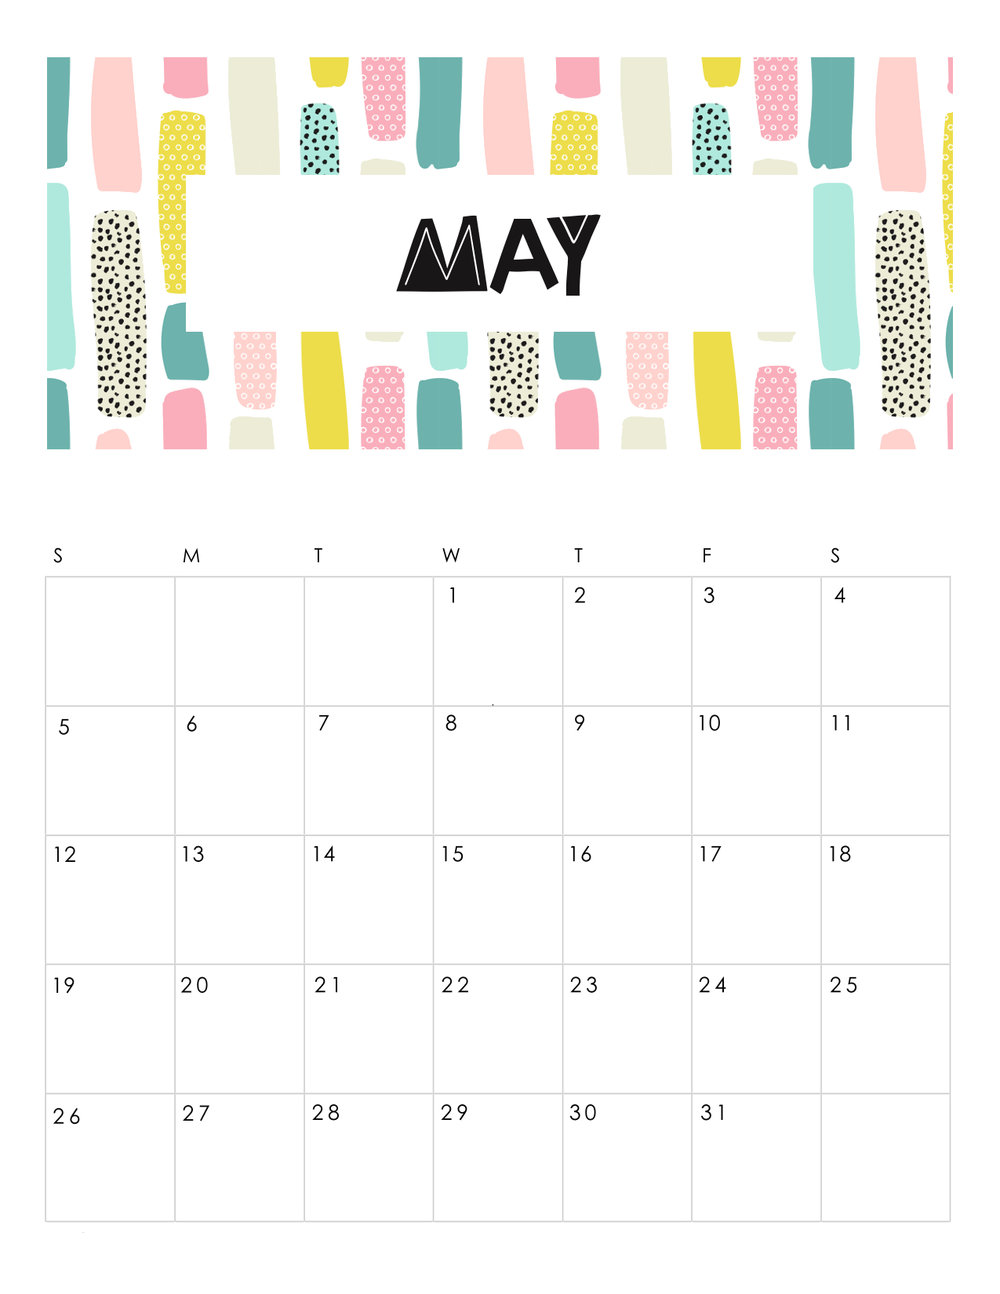 free-printable-abstract-patterned-calendar-2019-may.jpg